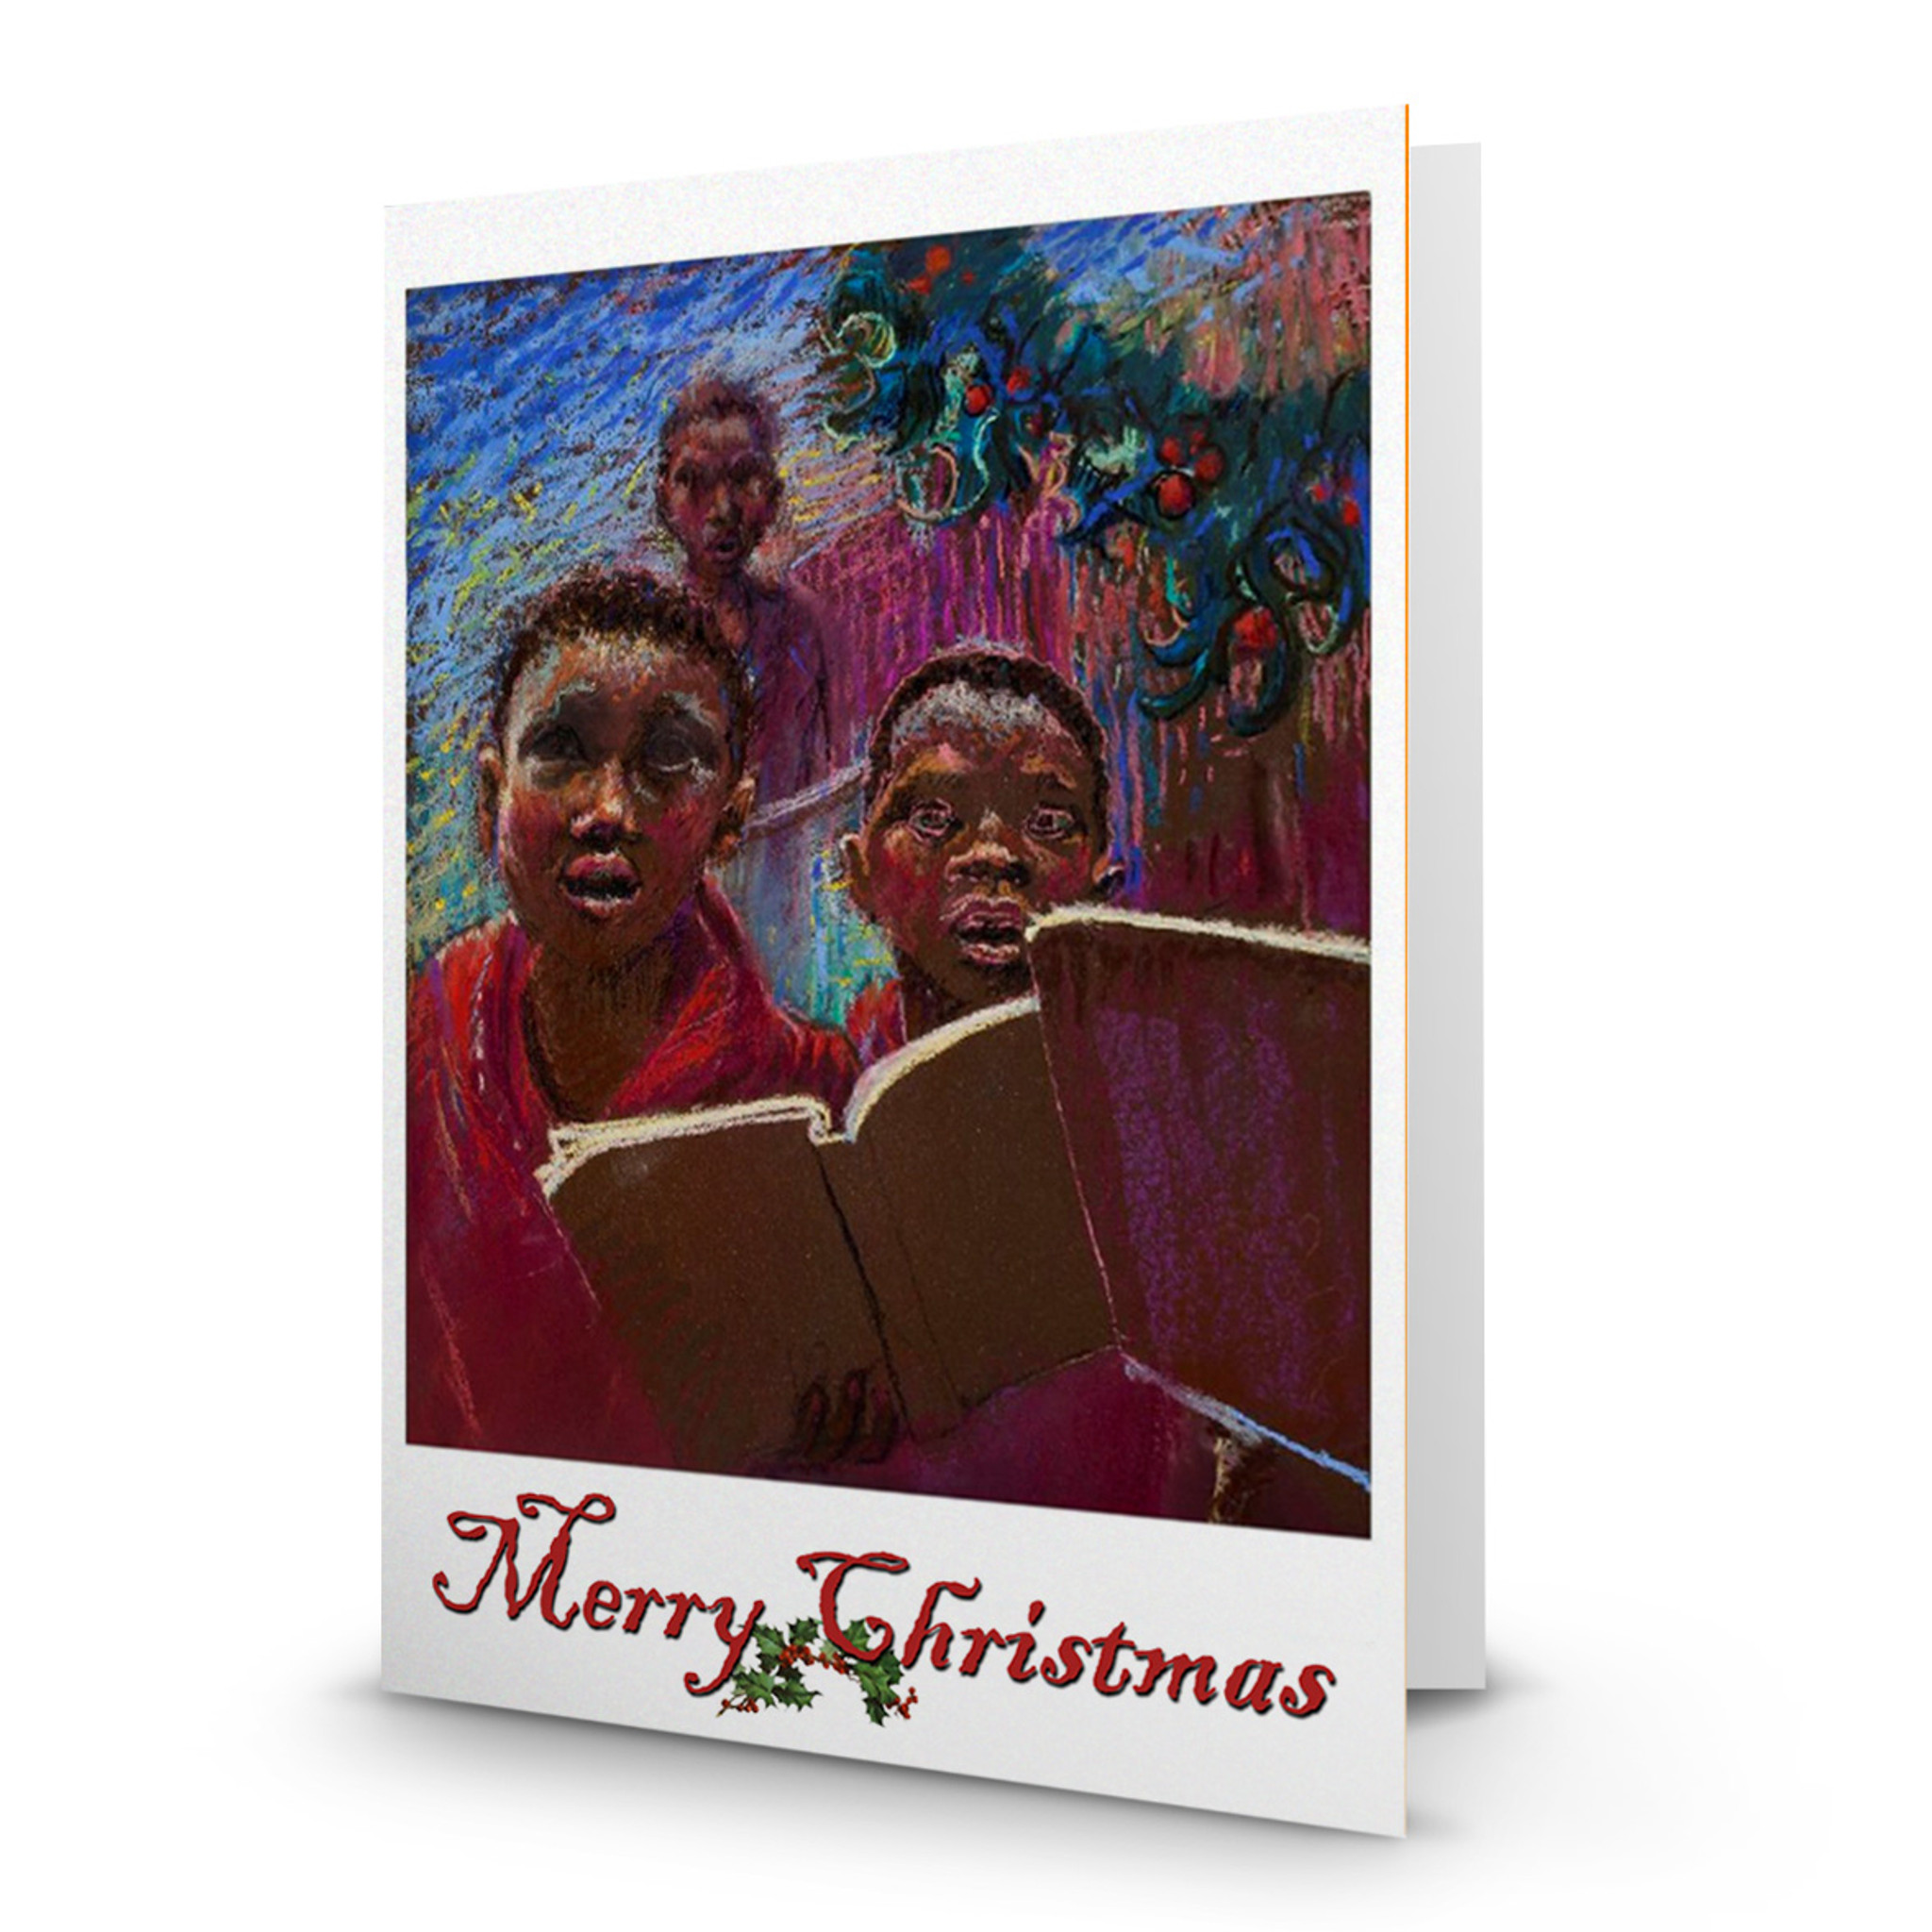 choir boys single artist christmas card ellen dreibelbis ed100